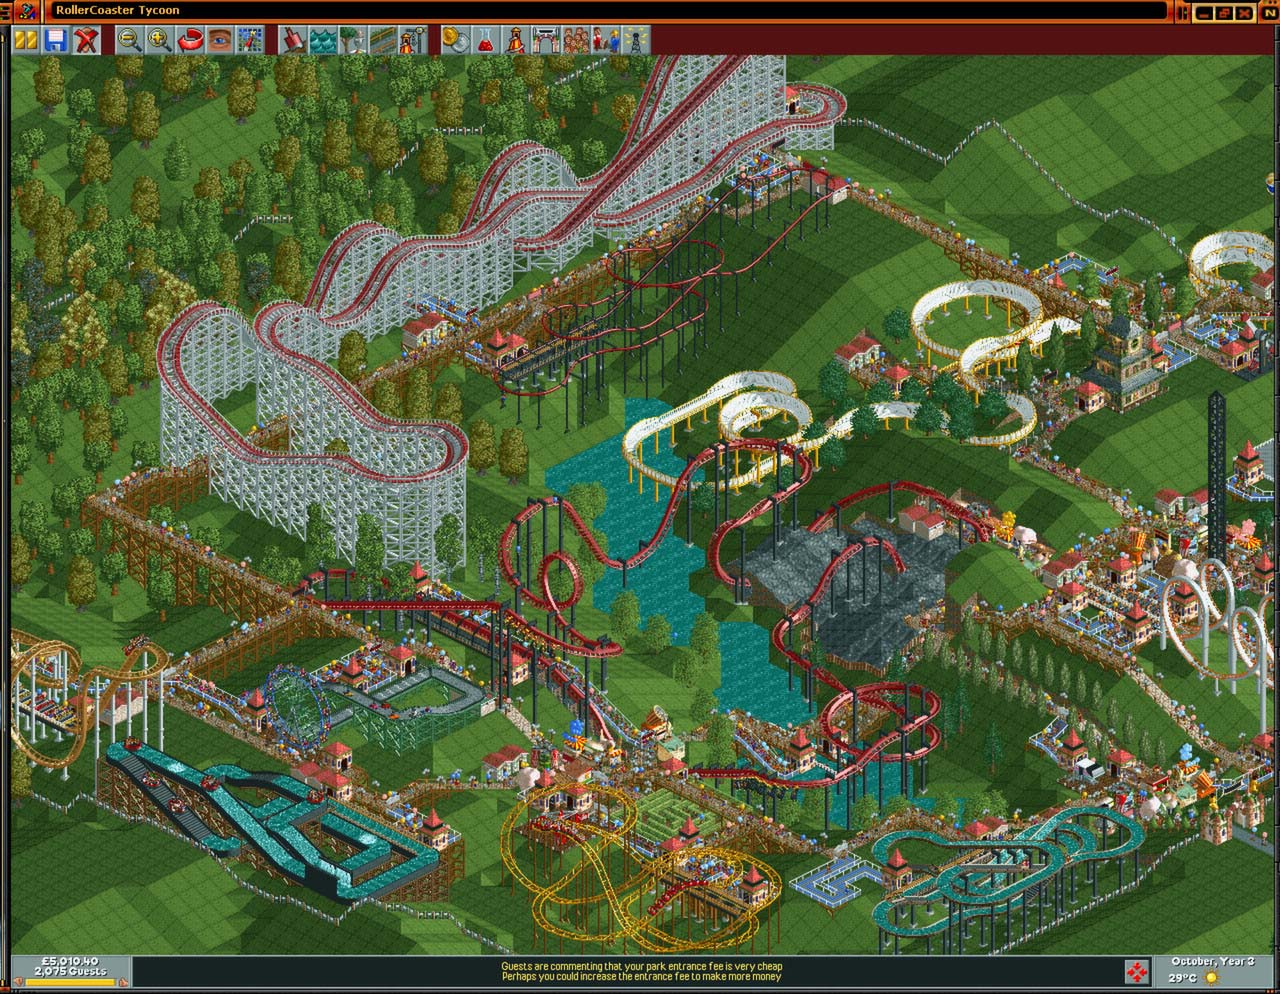 RollerCoaster Tycoon: Deluxe (Steam Key, GLOBAL)